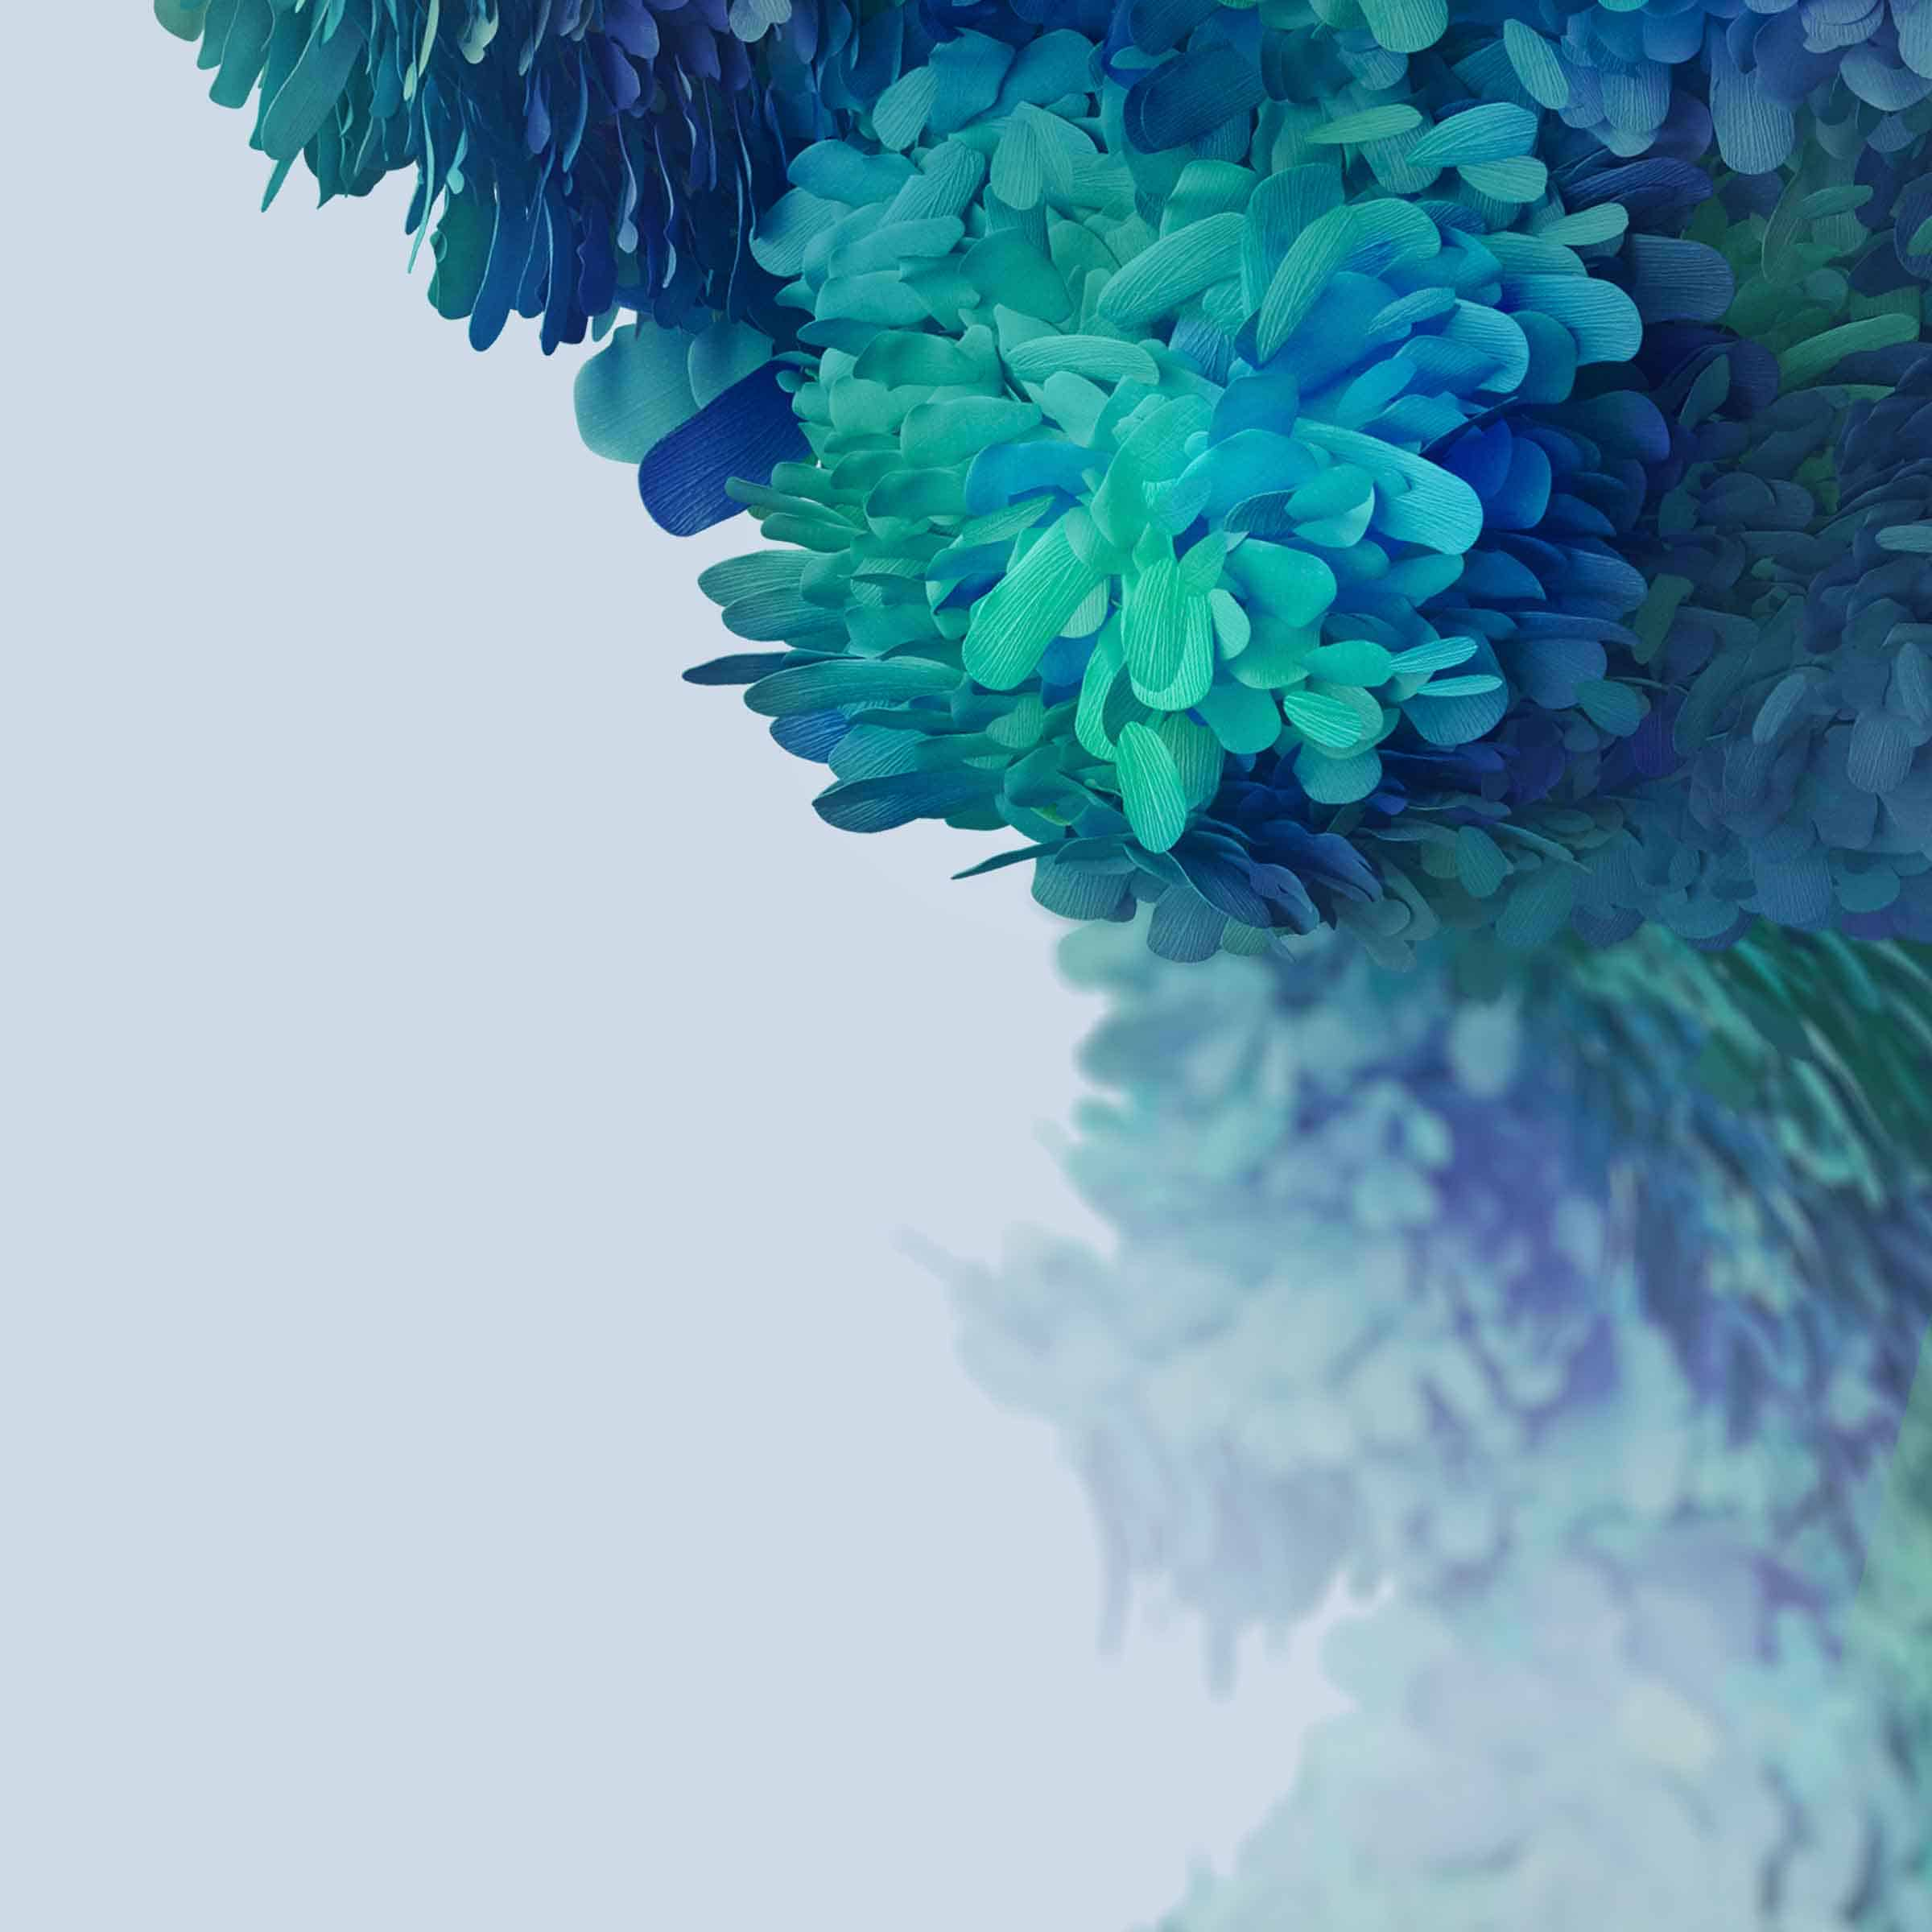 Galaxy S20 FE Wallpapers Compresesed 4